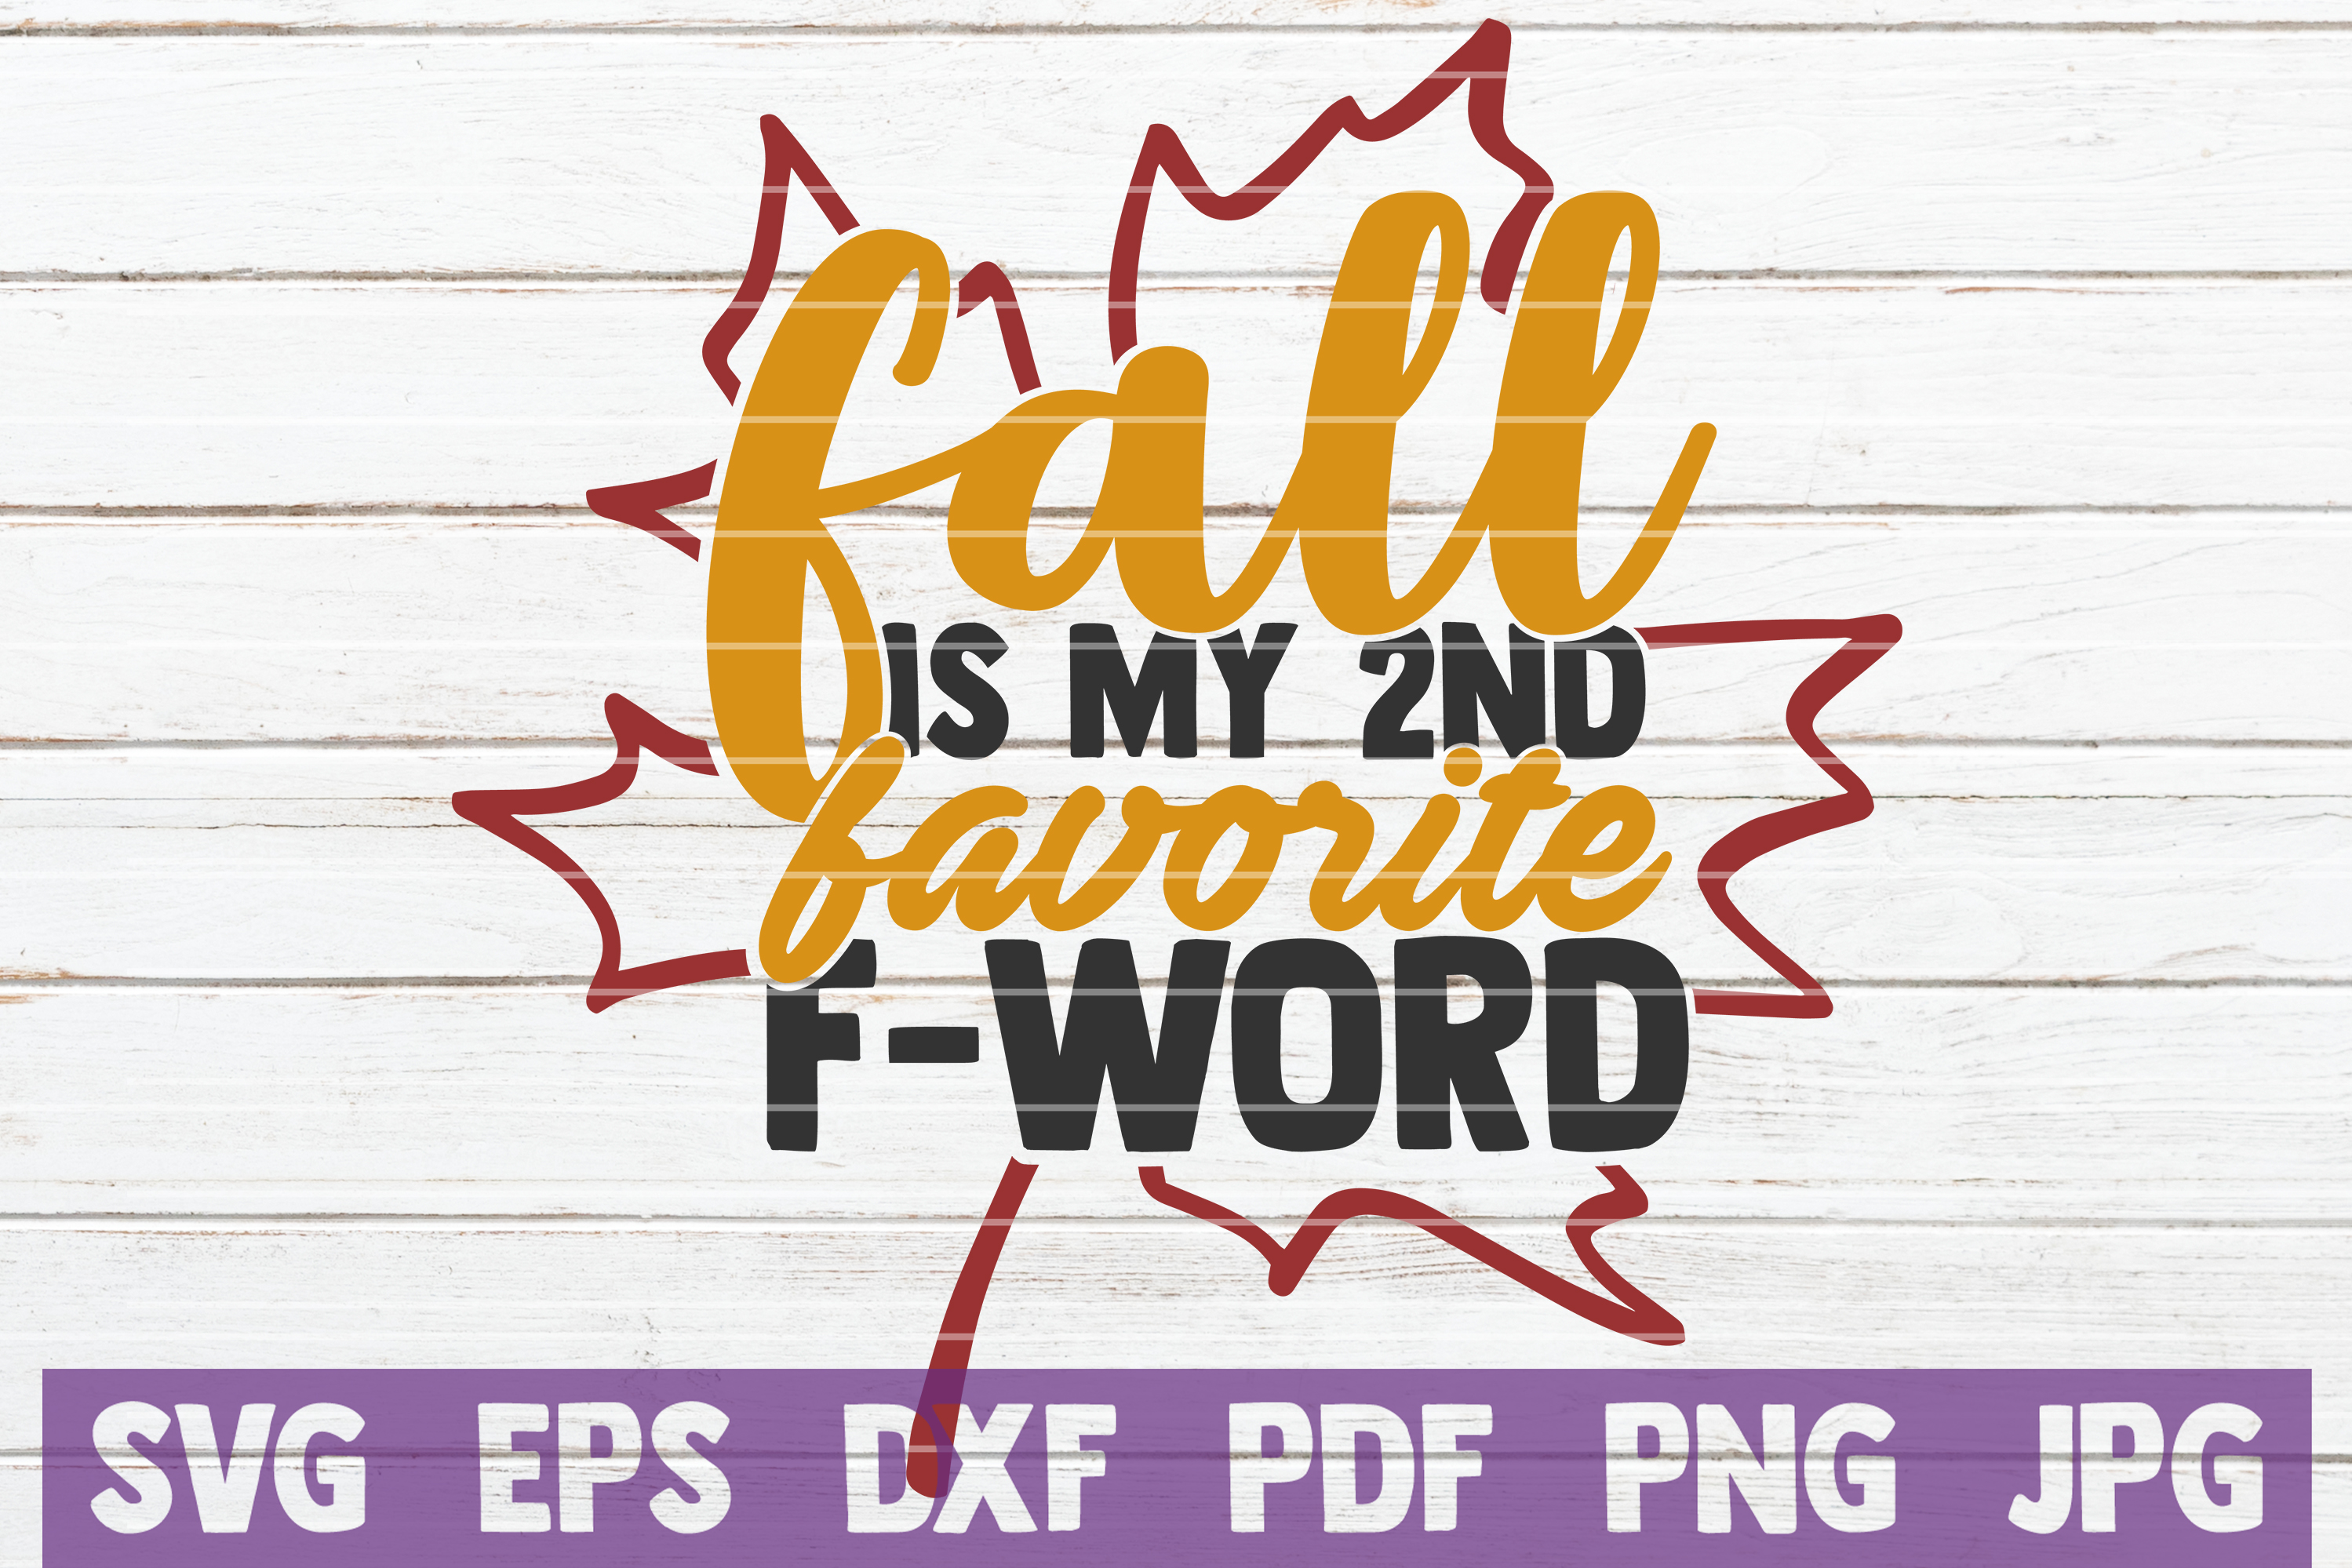 Fall Is My 2nd Favorite F-Word SVG Cut File example image 1